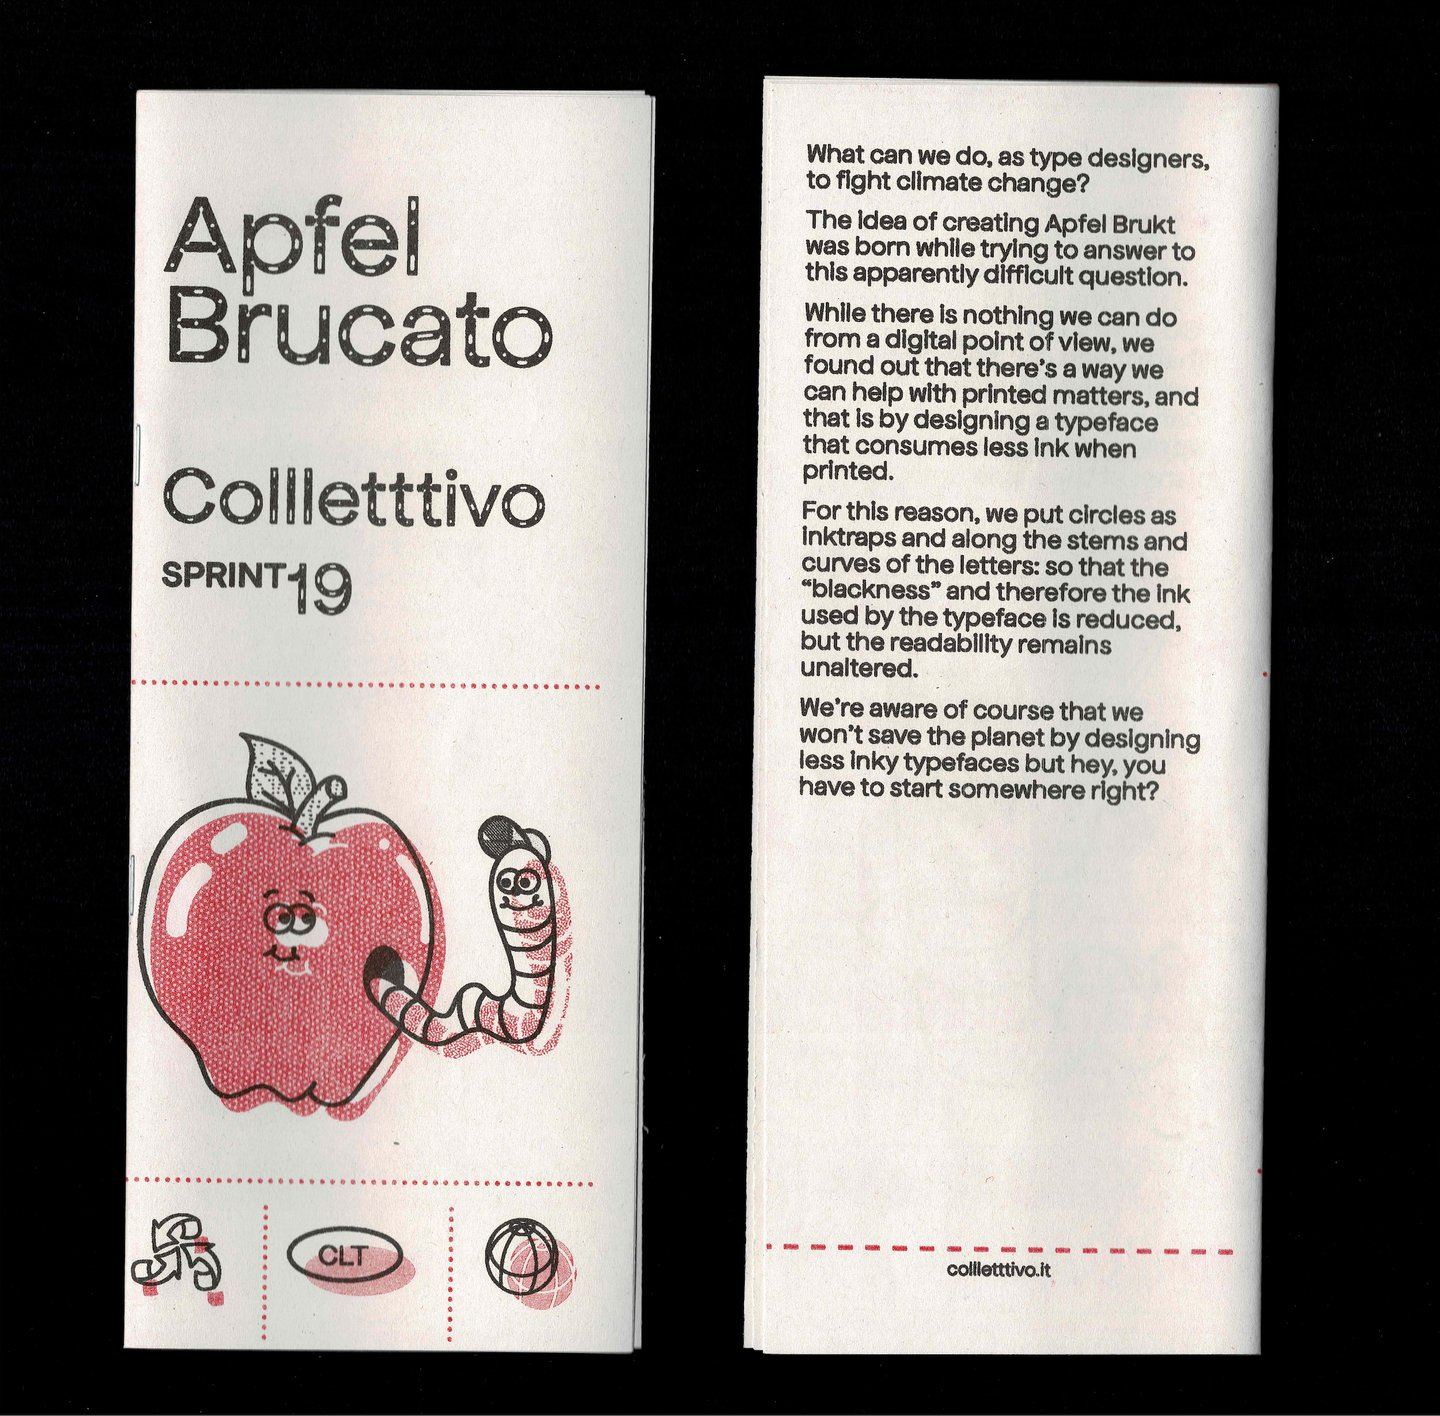 The Apfel Brukt is Collletttivo's new eco-friendly typeface that uses less ink